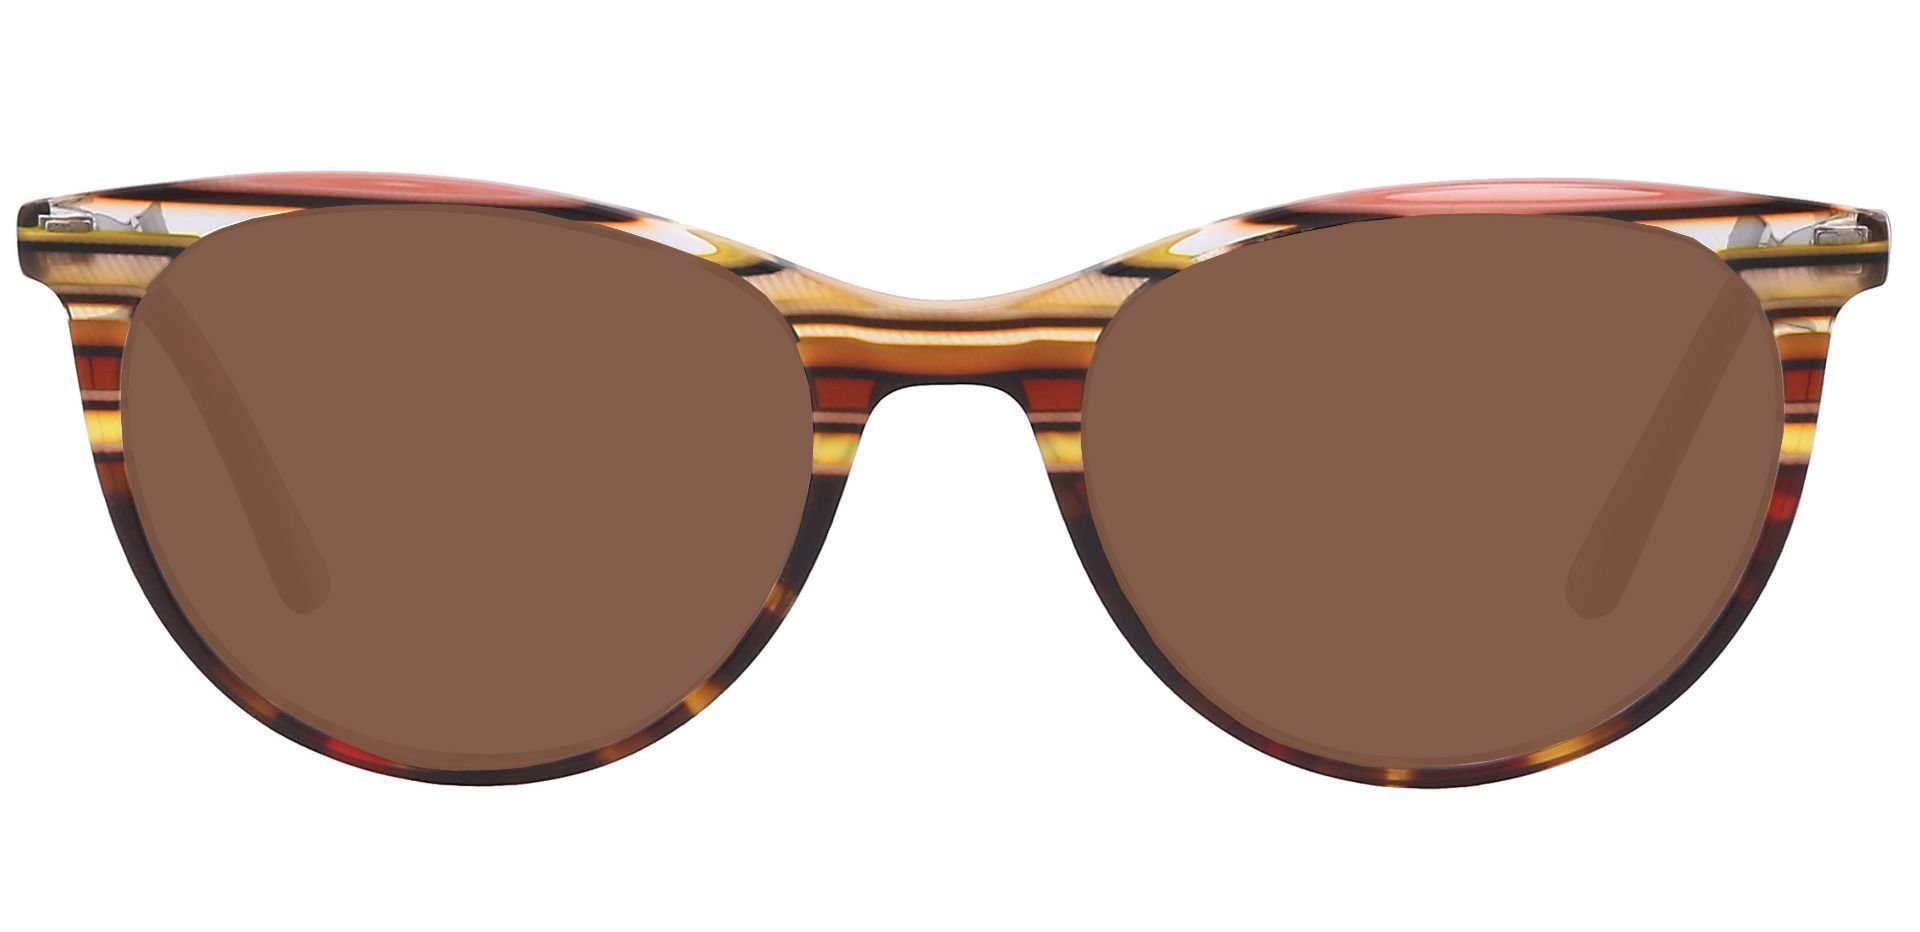 Patagonia Oval Prescription Sunglasses - Brown Frame With Brown Lenses